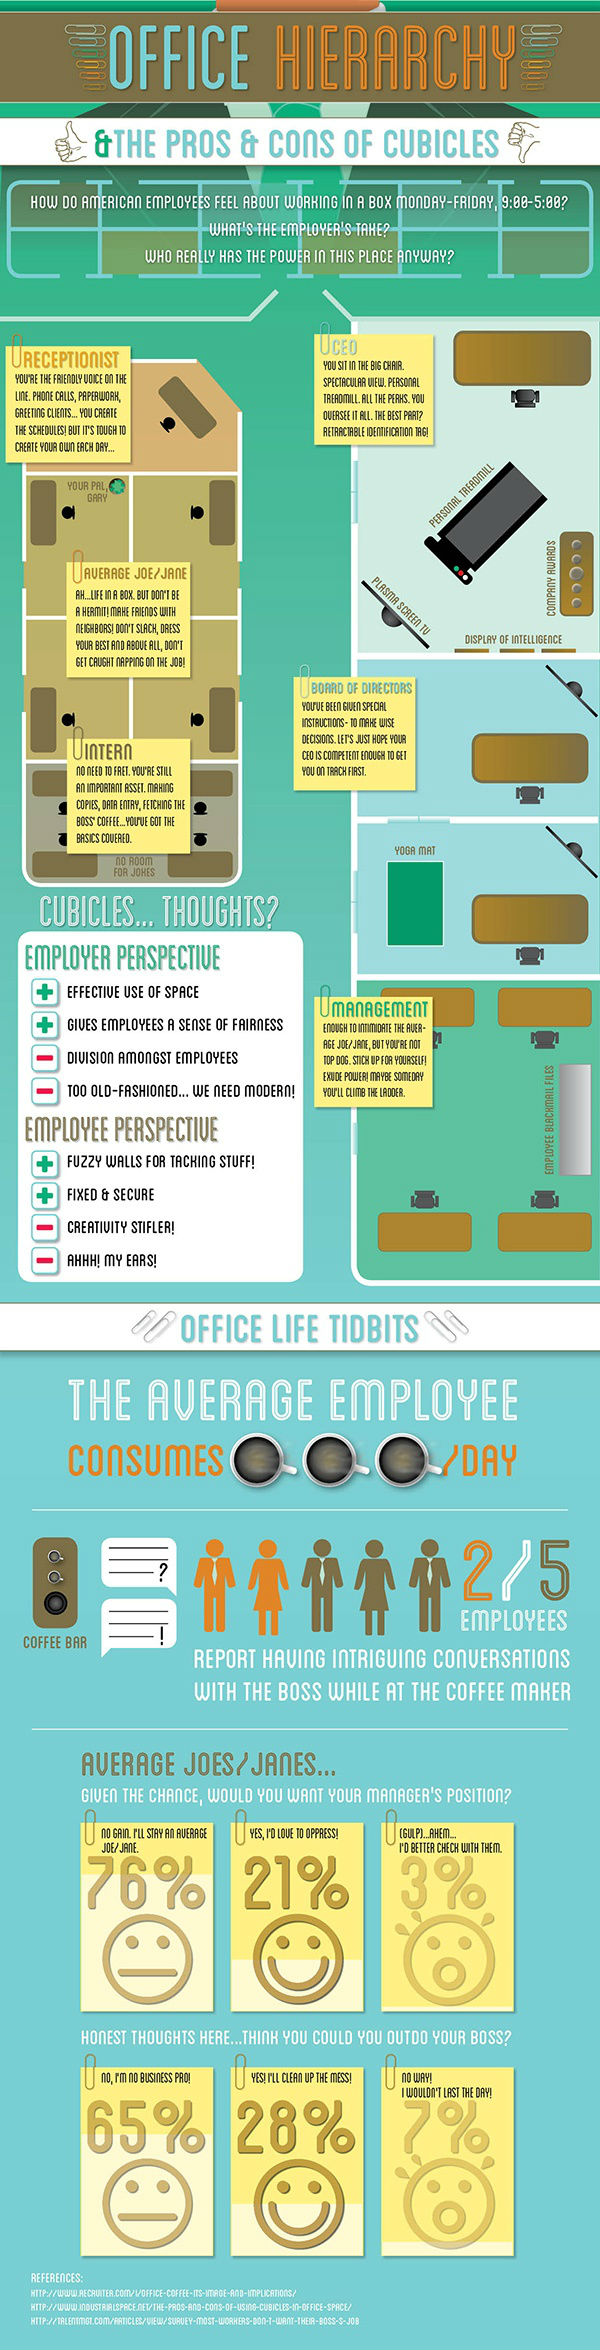 Office Hierarchy [Infographic]